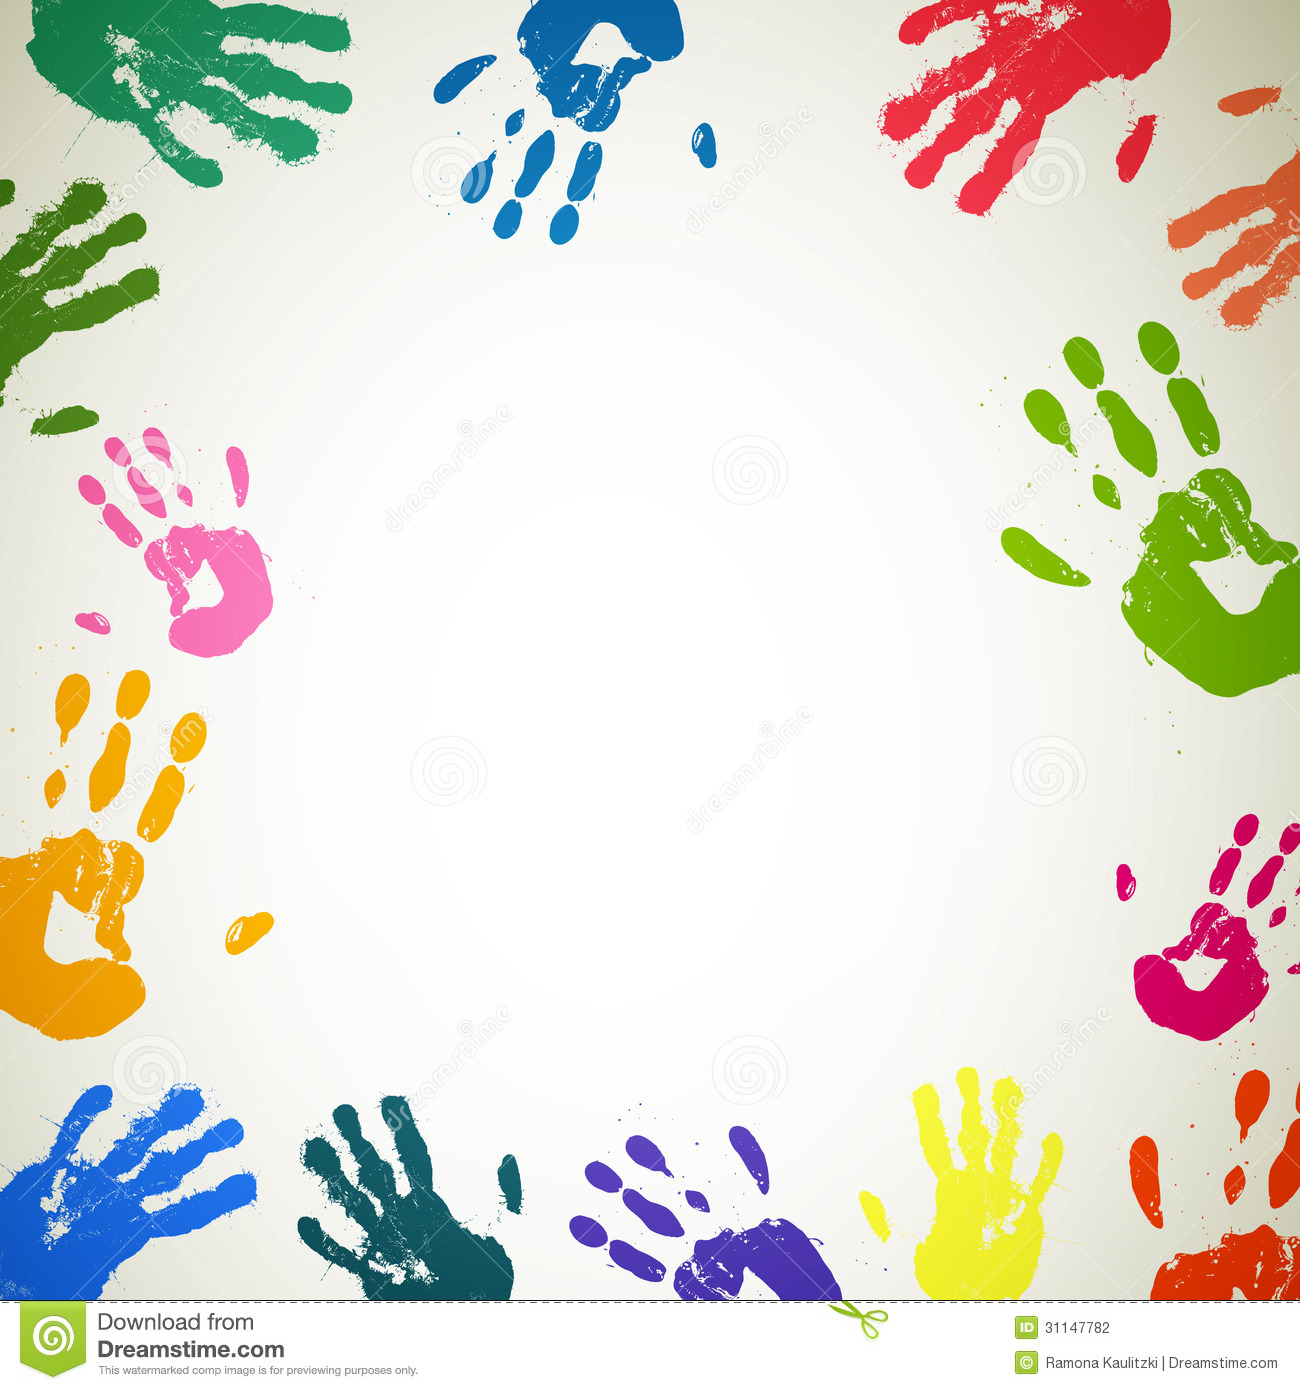 Illustration of an abstract background with colorful handprints